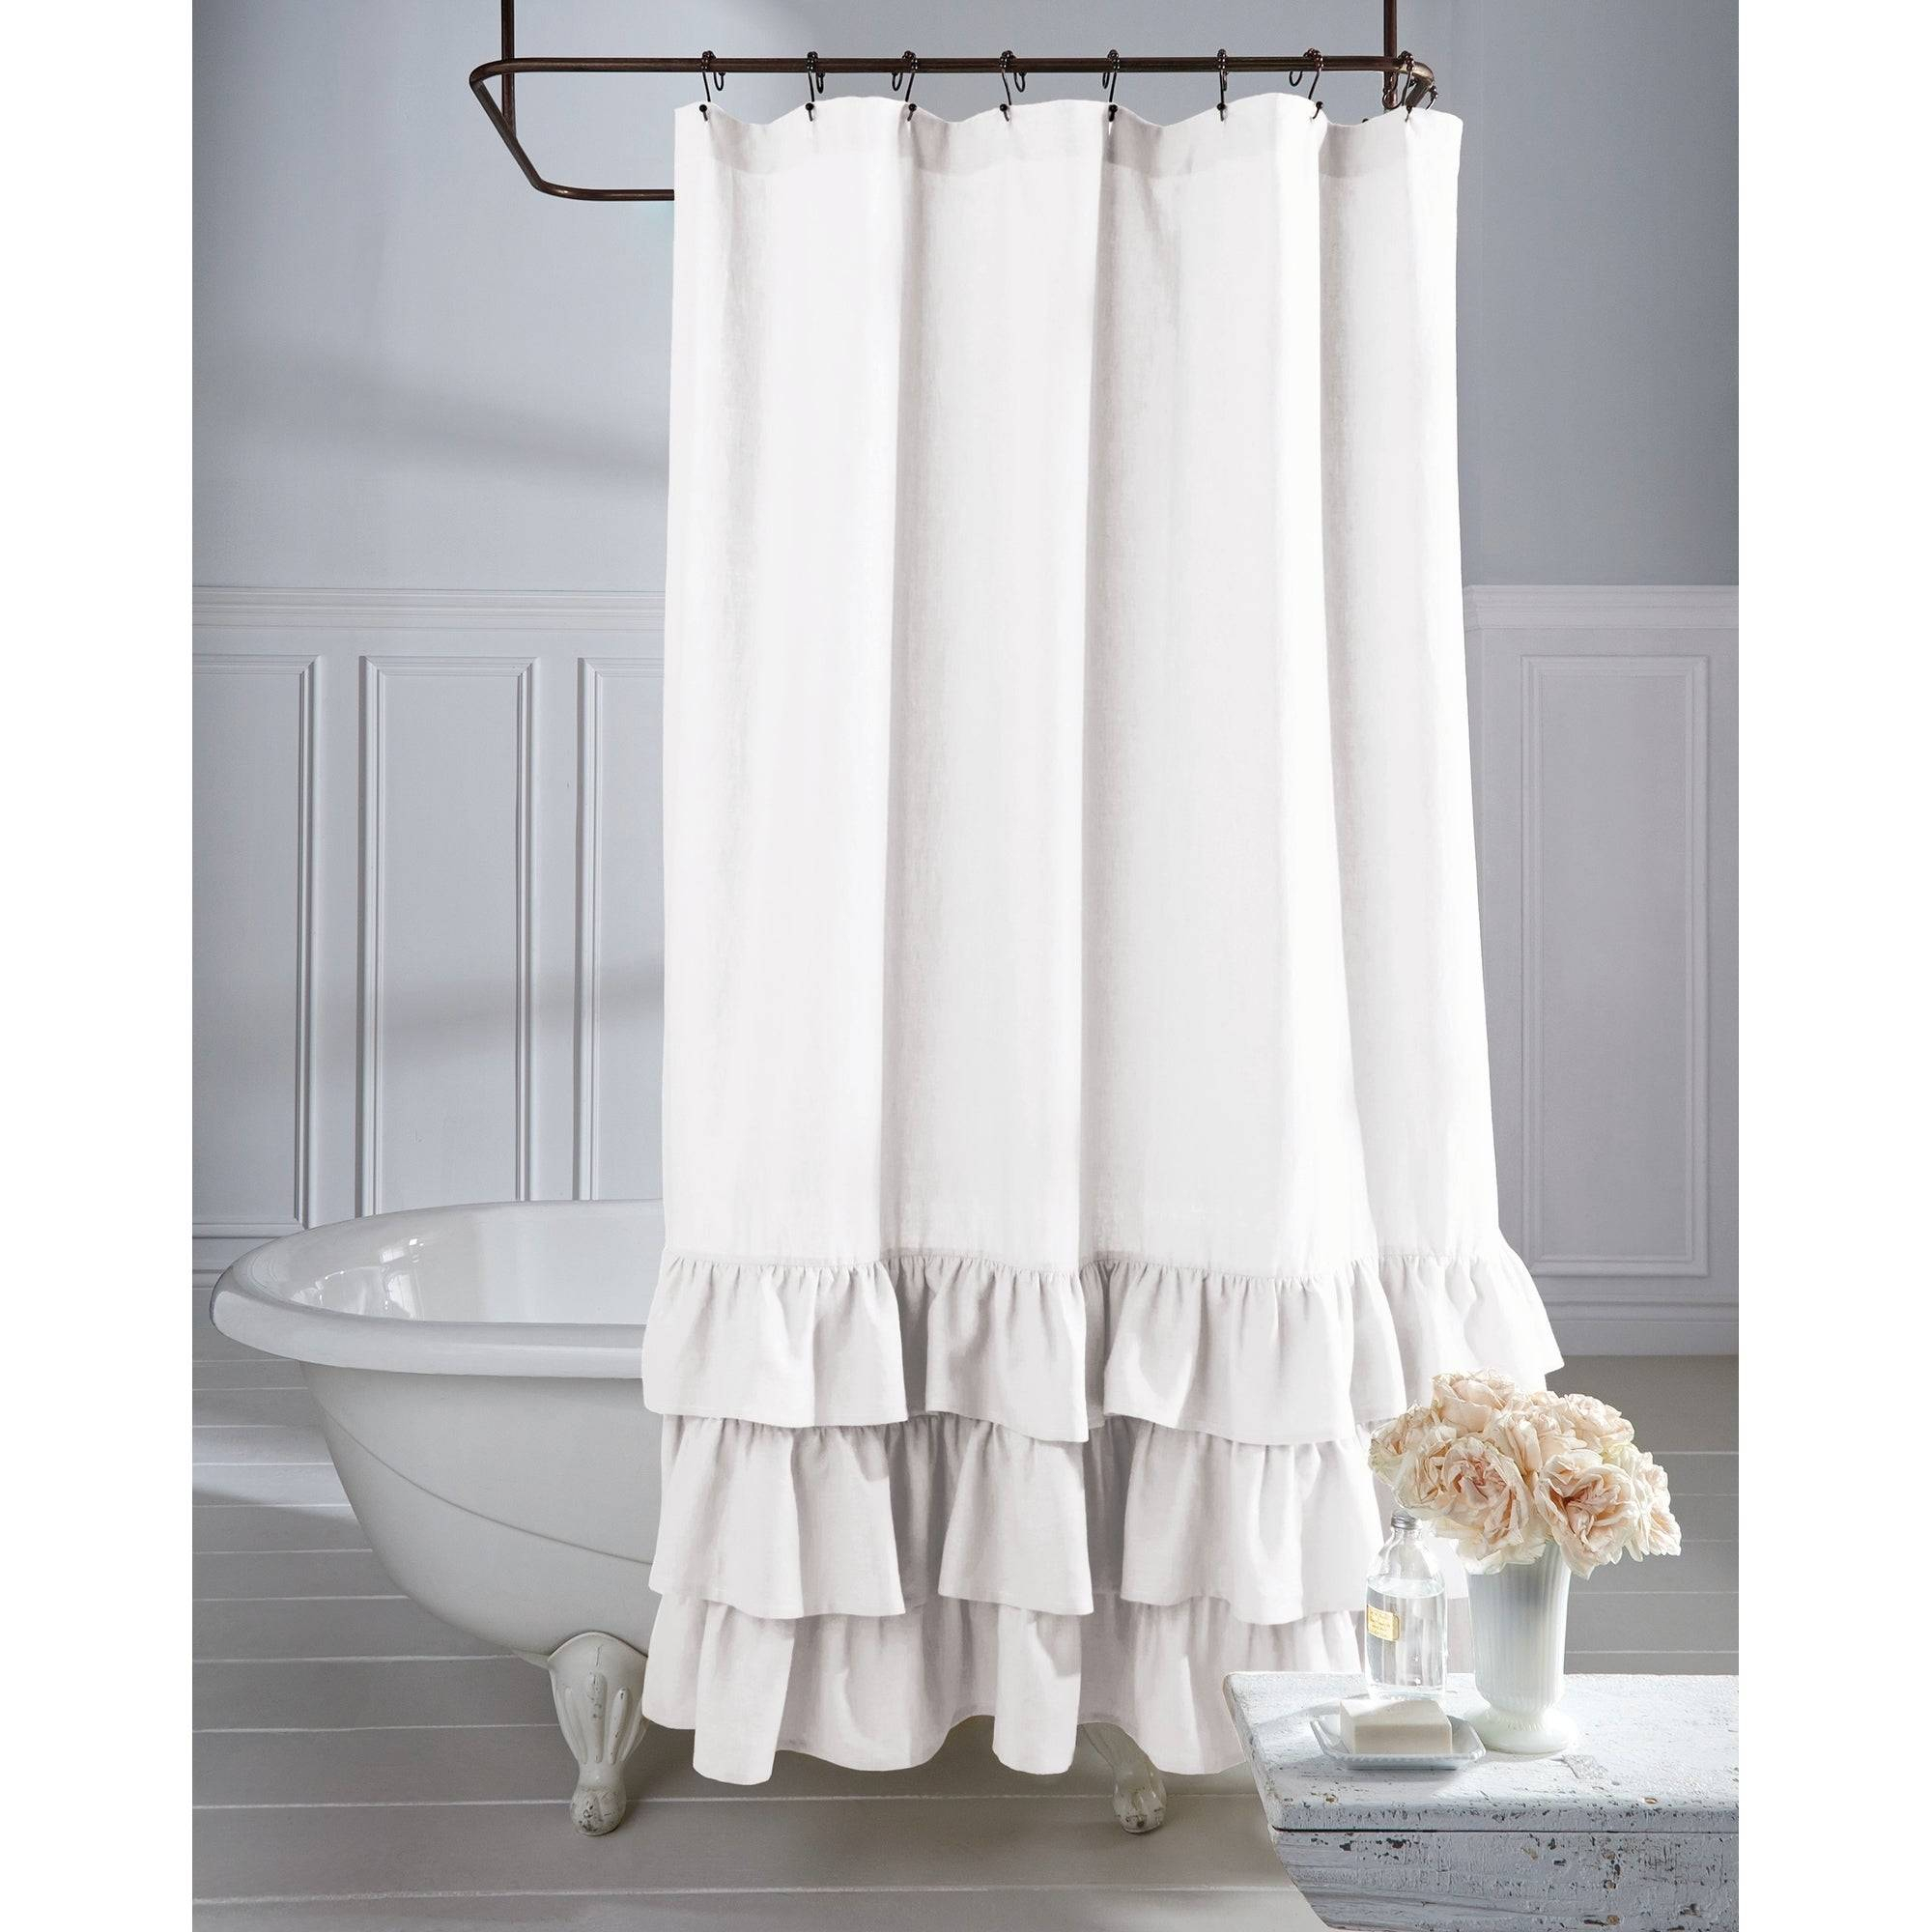 Fascinating Grey Ruffle Shower Curtain Farmhouse Linen Inside Silver Vertical Ruffled Waterfall Valance And Curtain Tiers (View 7 of 20)